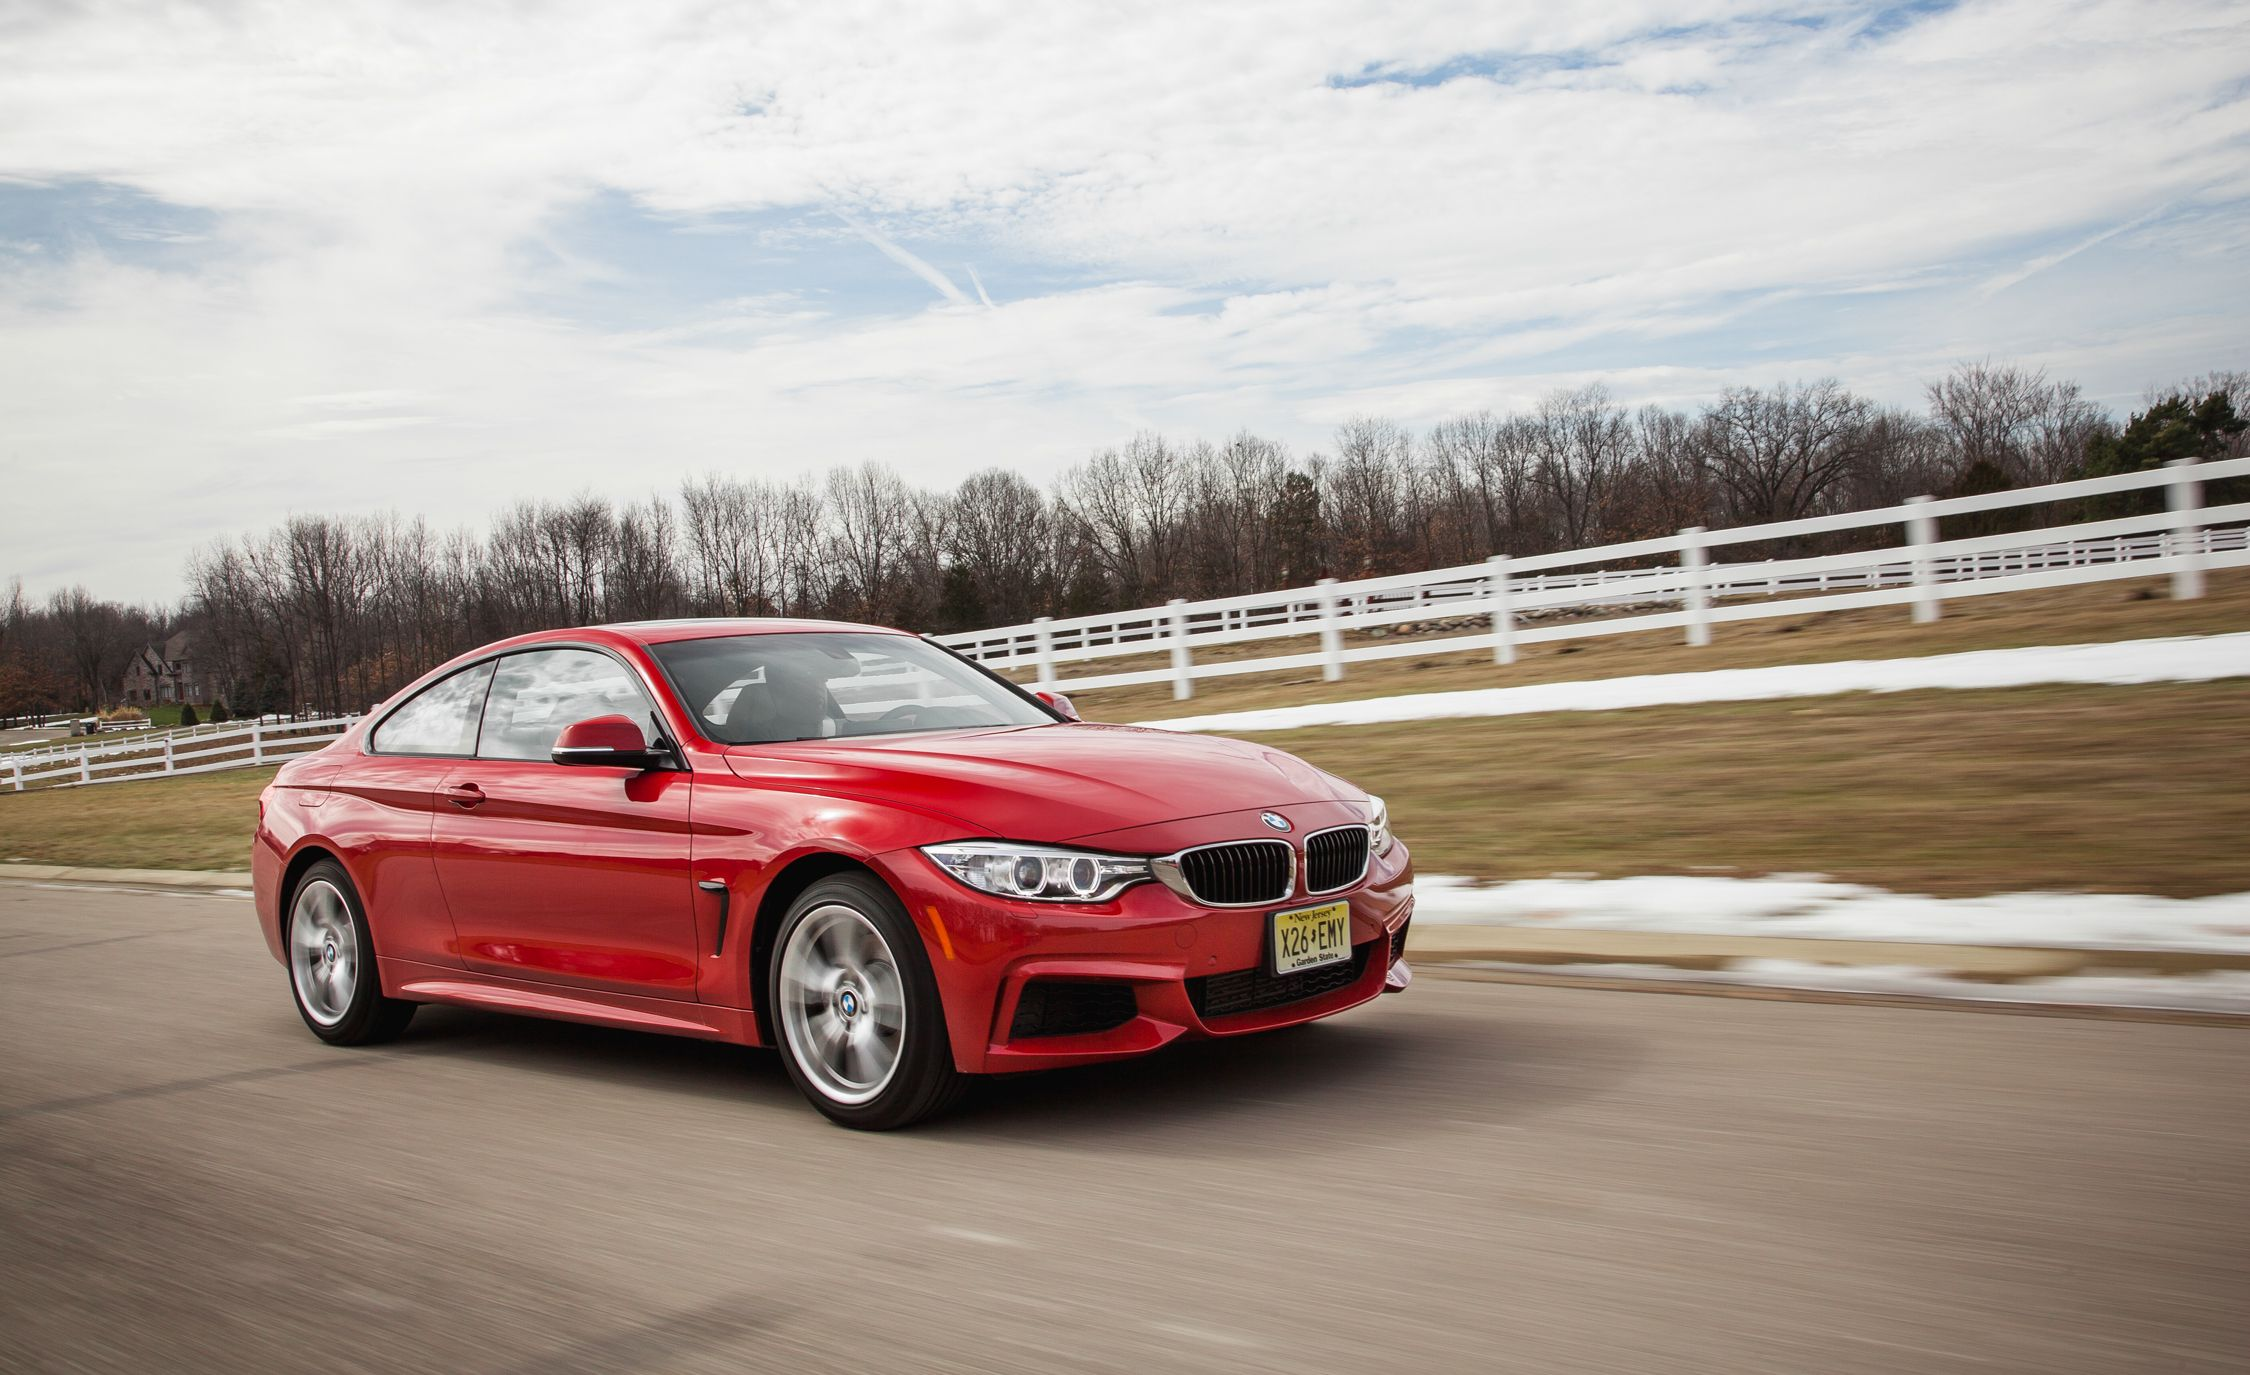 2015 bmw 4-series coupe pictures | photo gallery | car and driver